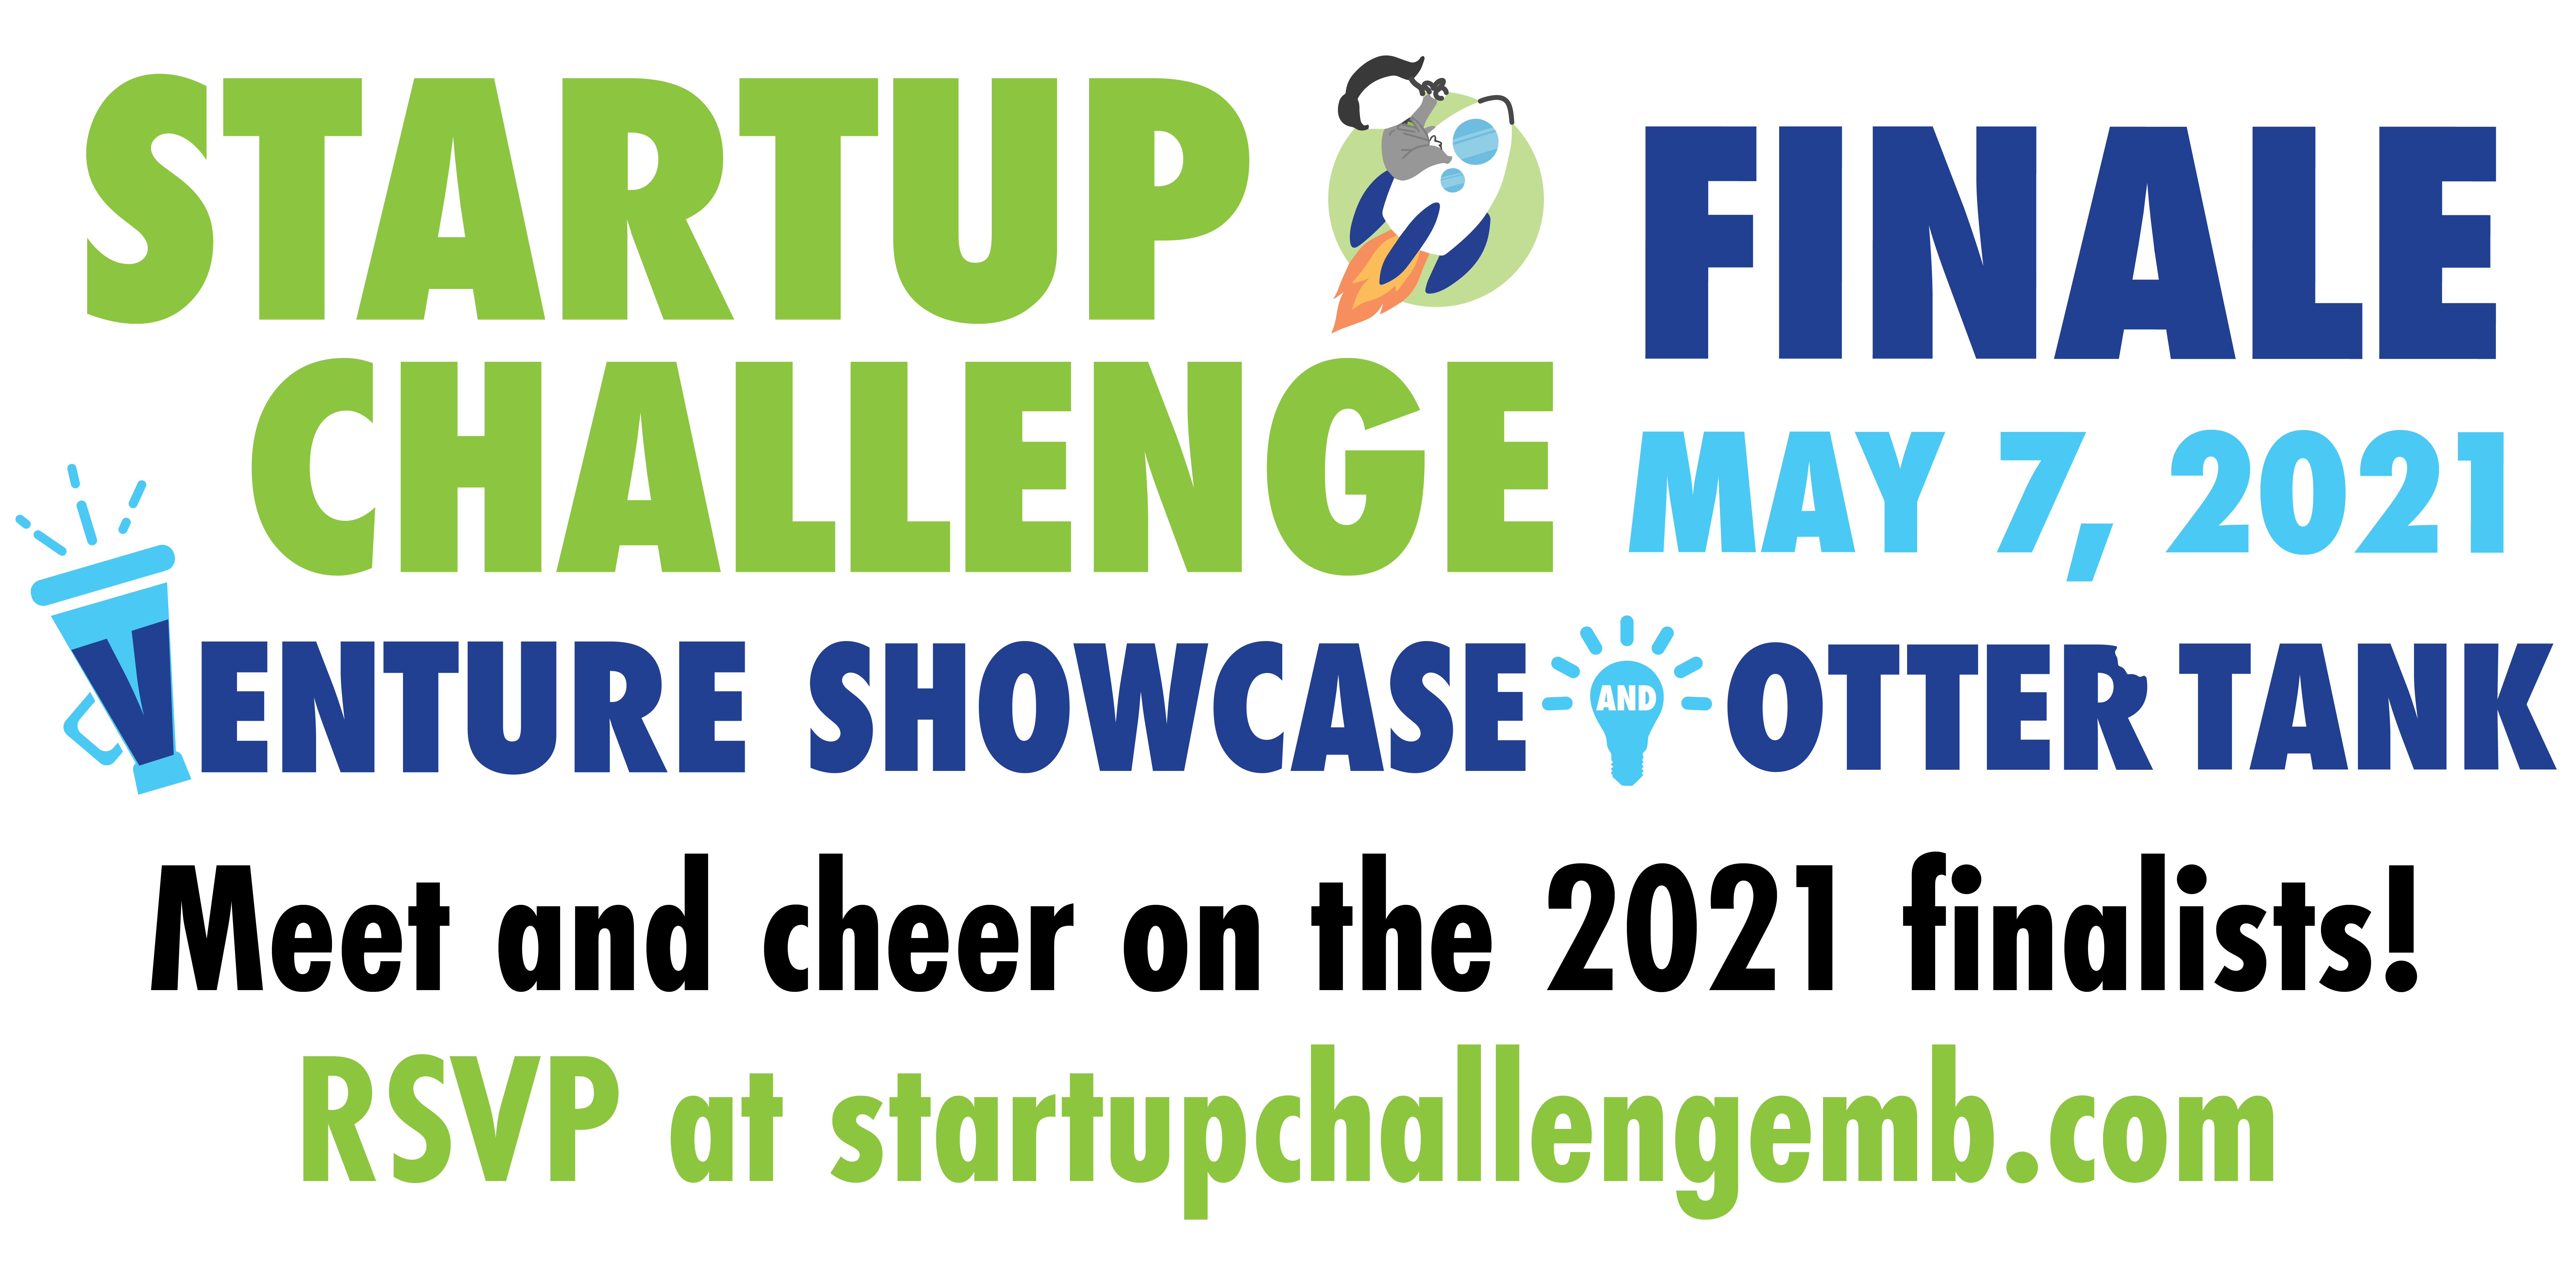 Startup Challenge Finale - Venture Showcase and Otter Tank May 7 2021